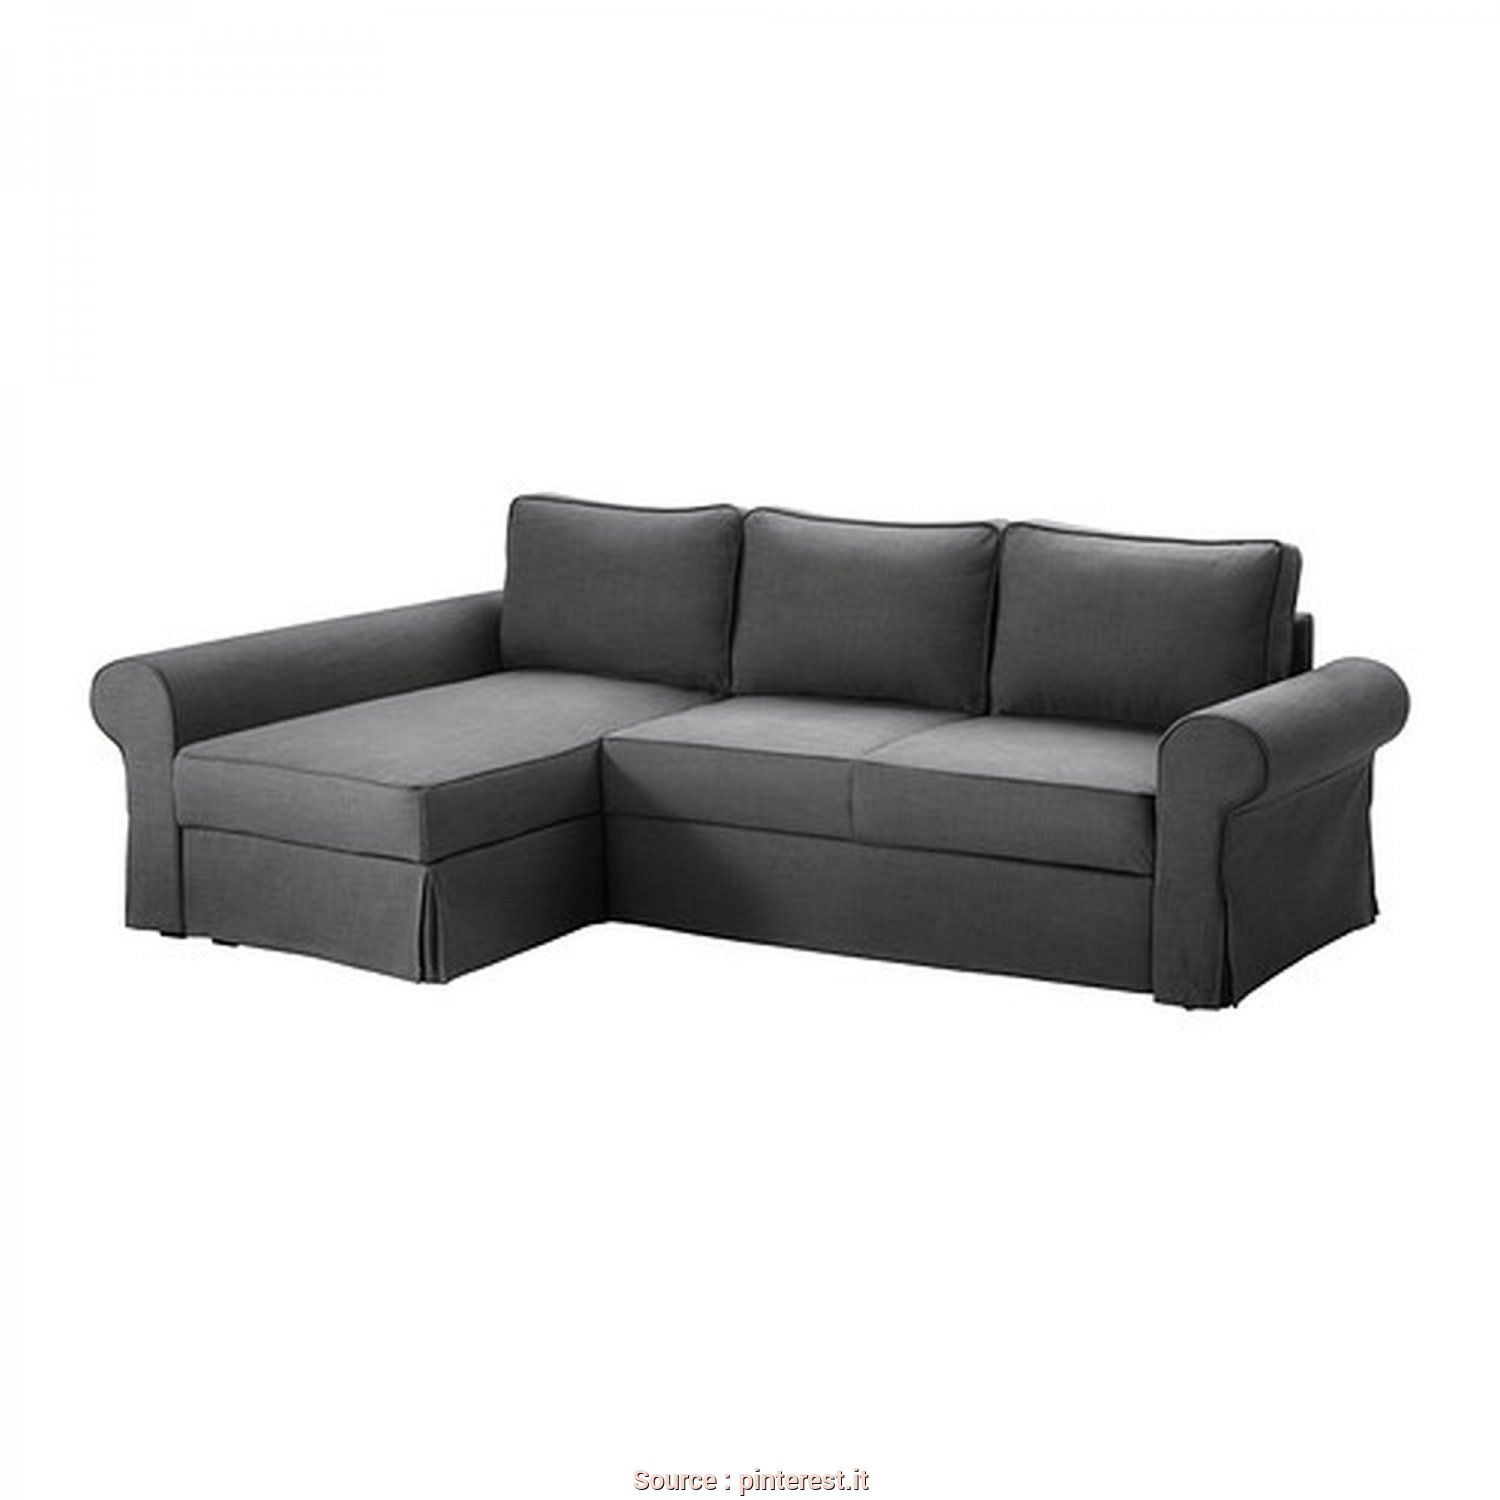 Divani Grigi Ikea, Classy IKEA +BACKABRO+2+Seat+Loveseat+Sofa+Bed+And+Chaise+SLIPCOVER+Cover+SVANBY+GRAY+Grey+Linen+Blend